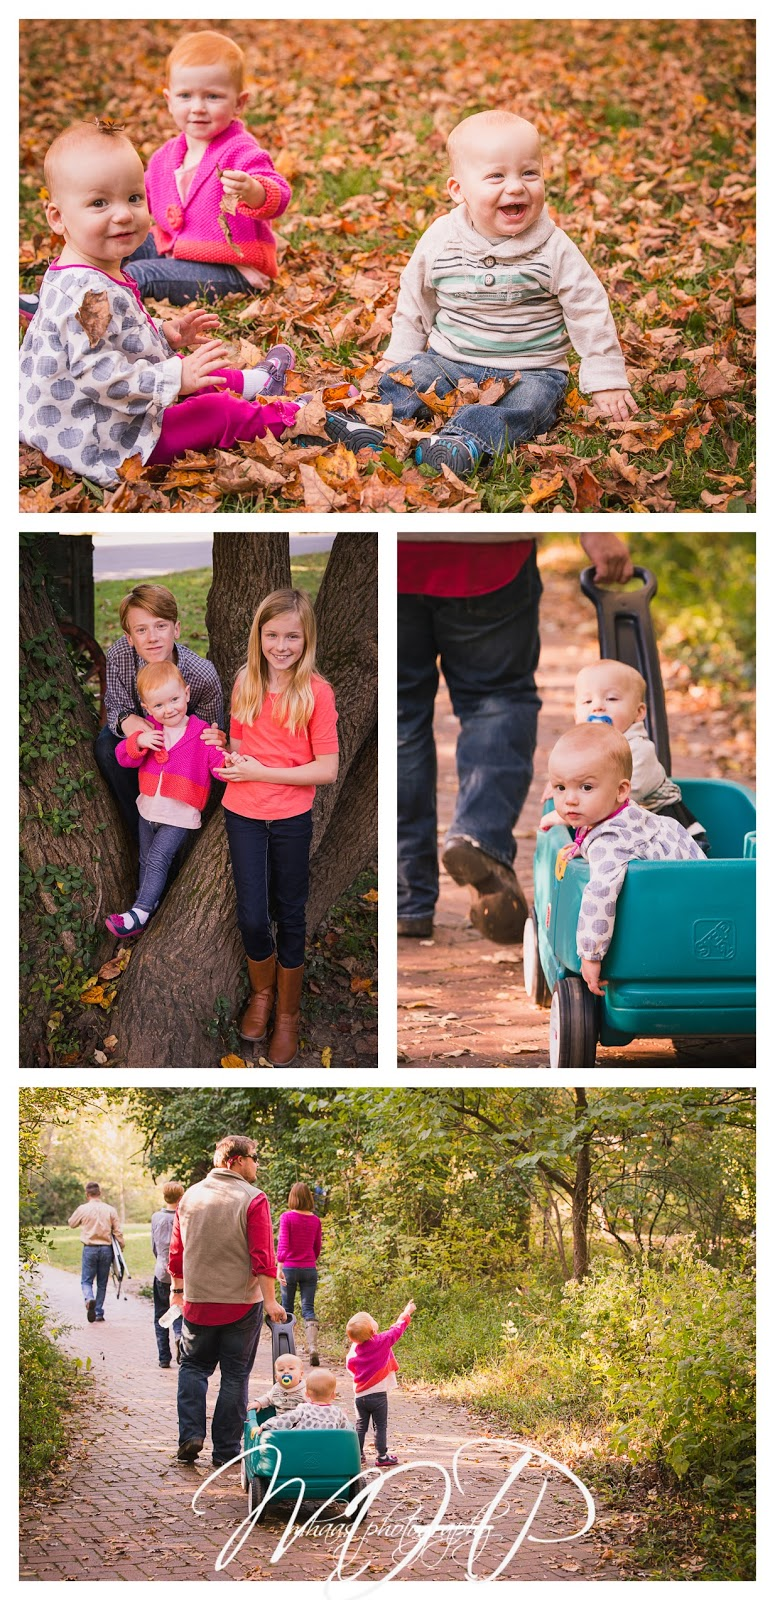 Extended Family, portraits, Louisville, Anchorage Park, large family, four generations, toddlers, Kids, grandparents, birthday gift, grandma, great grandma, great grandpa, twins, 2015, fall, Family, extended family photos louisville ky, MHPFamilies,